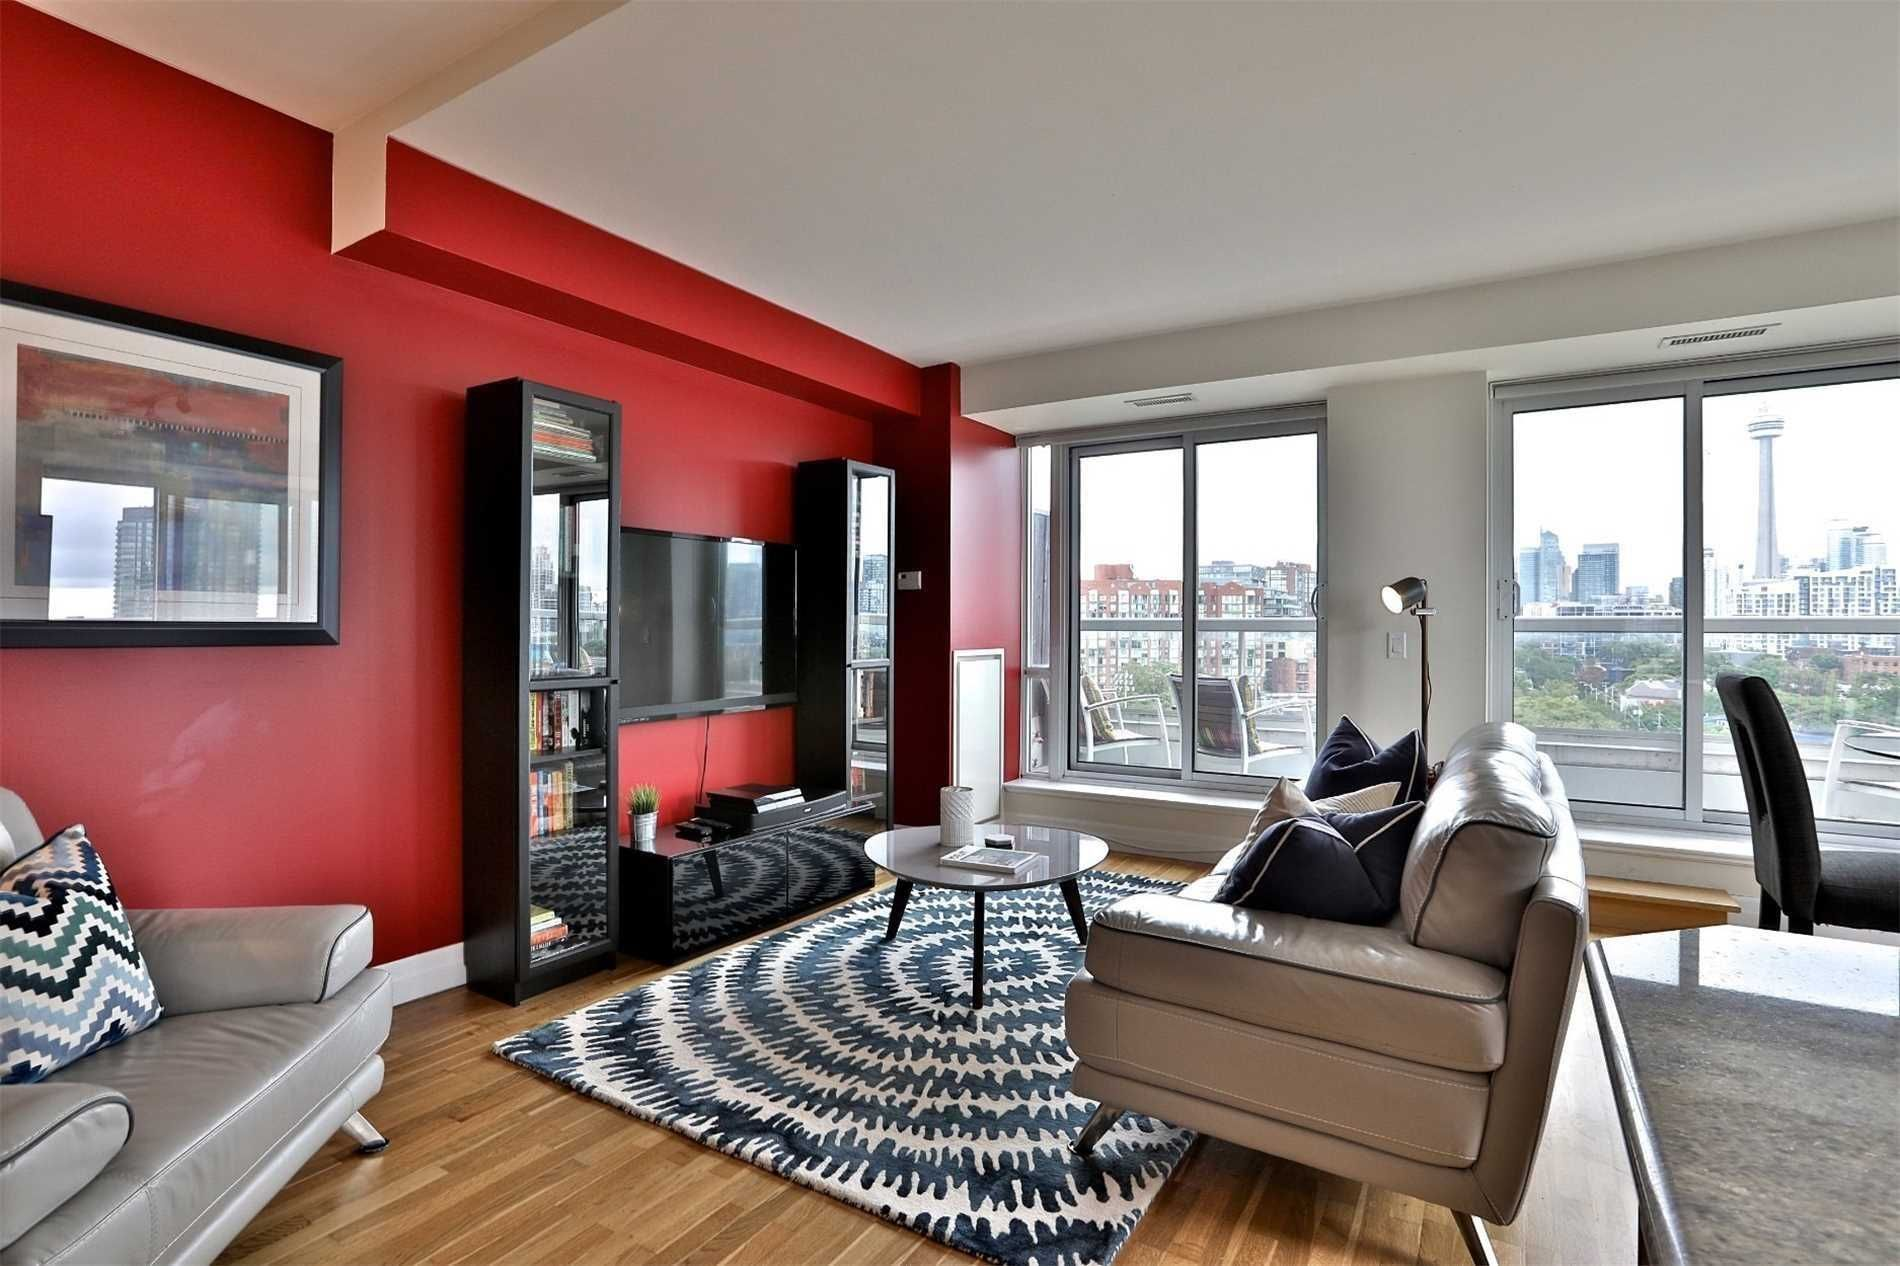 15 Stafford St, unit Ph04 for rent in Toronto - image #1